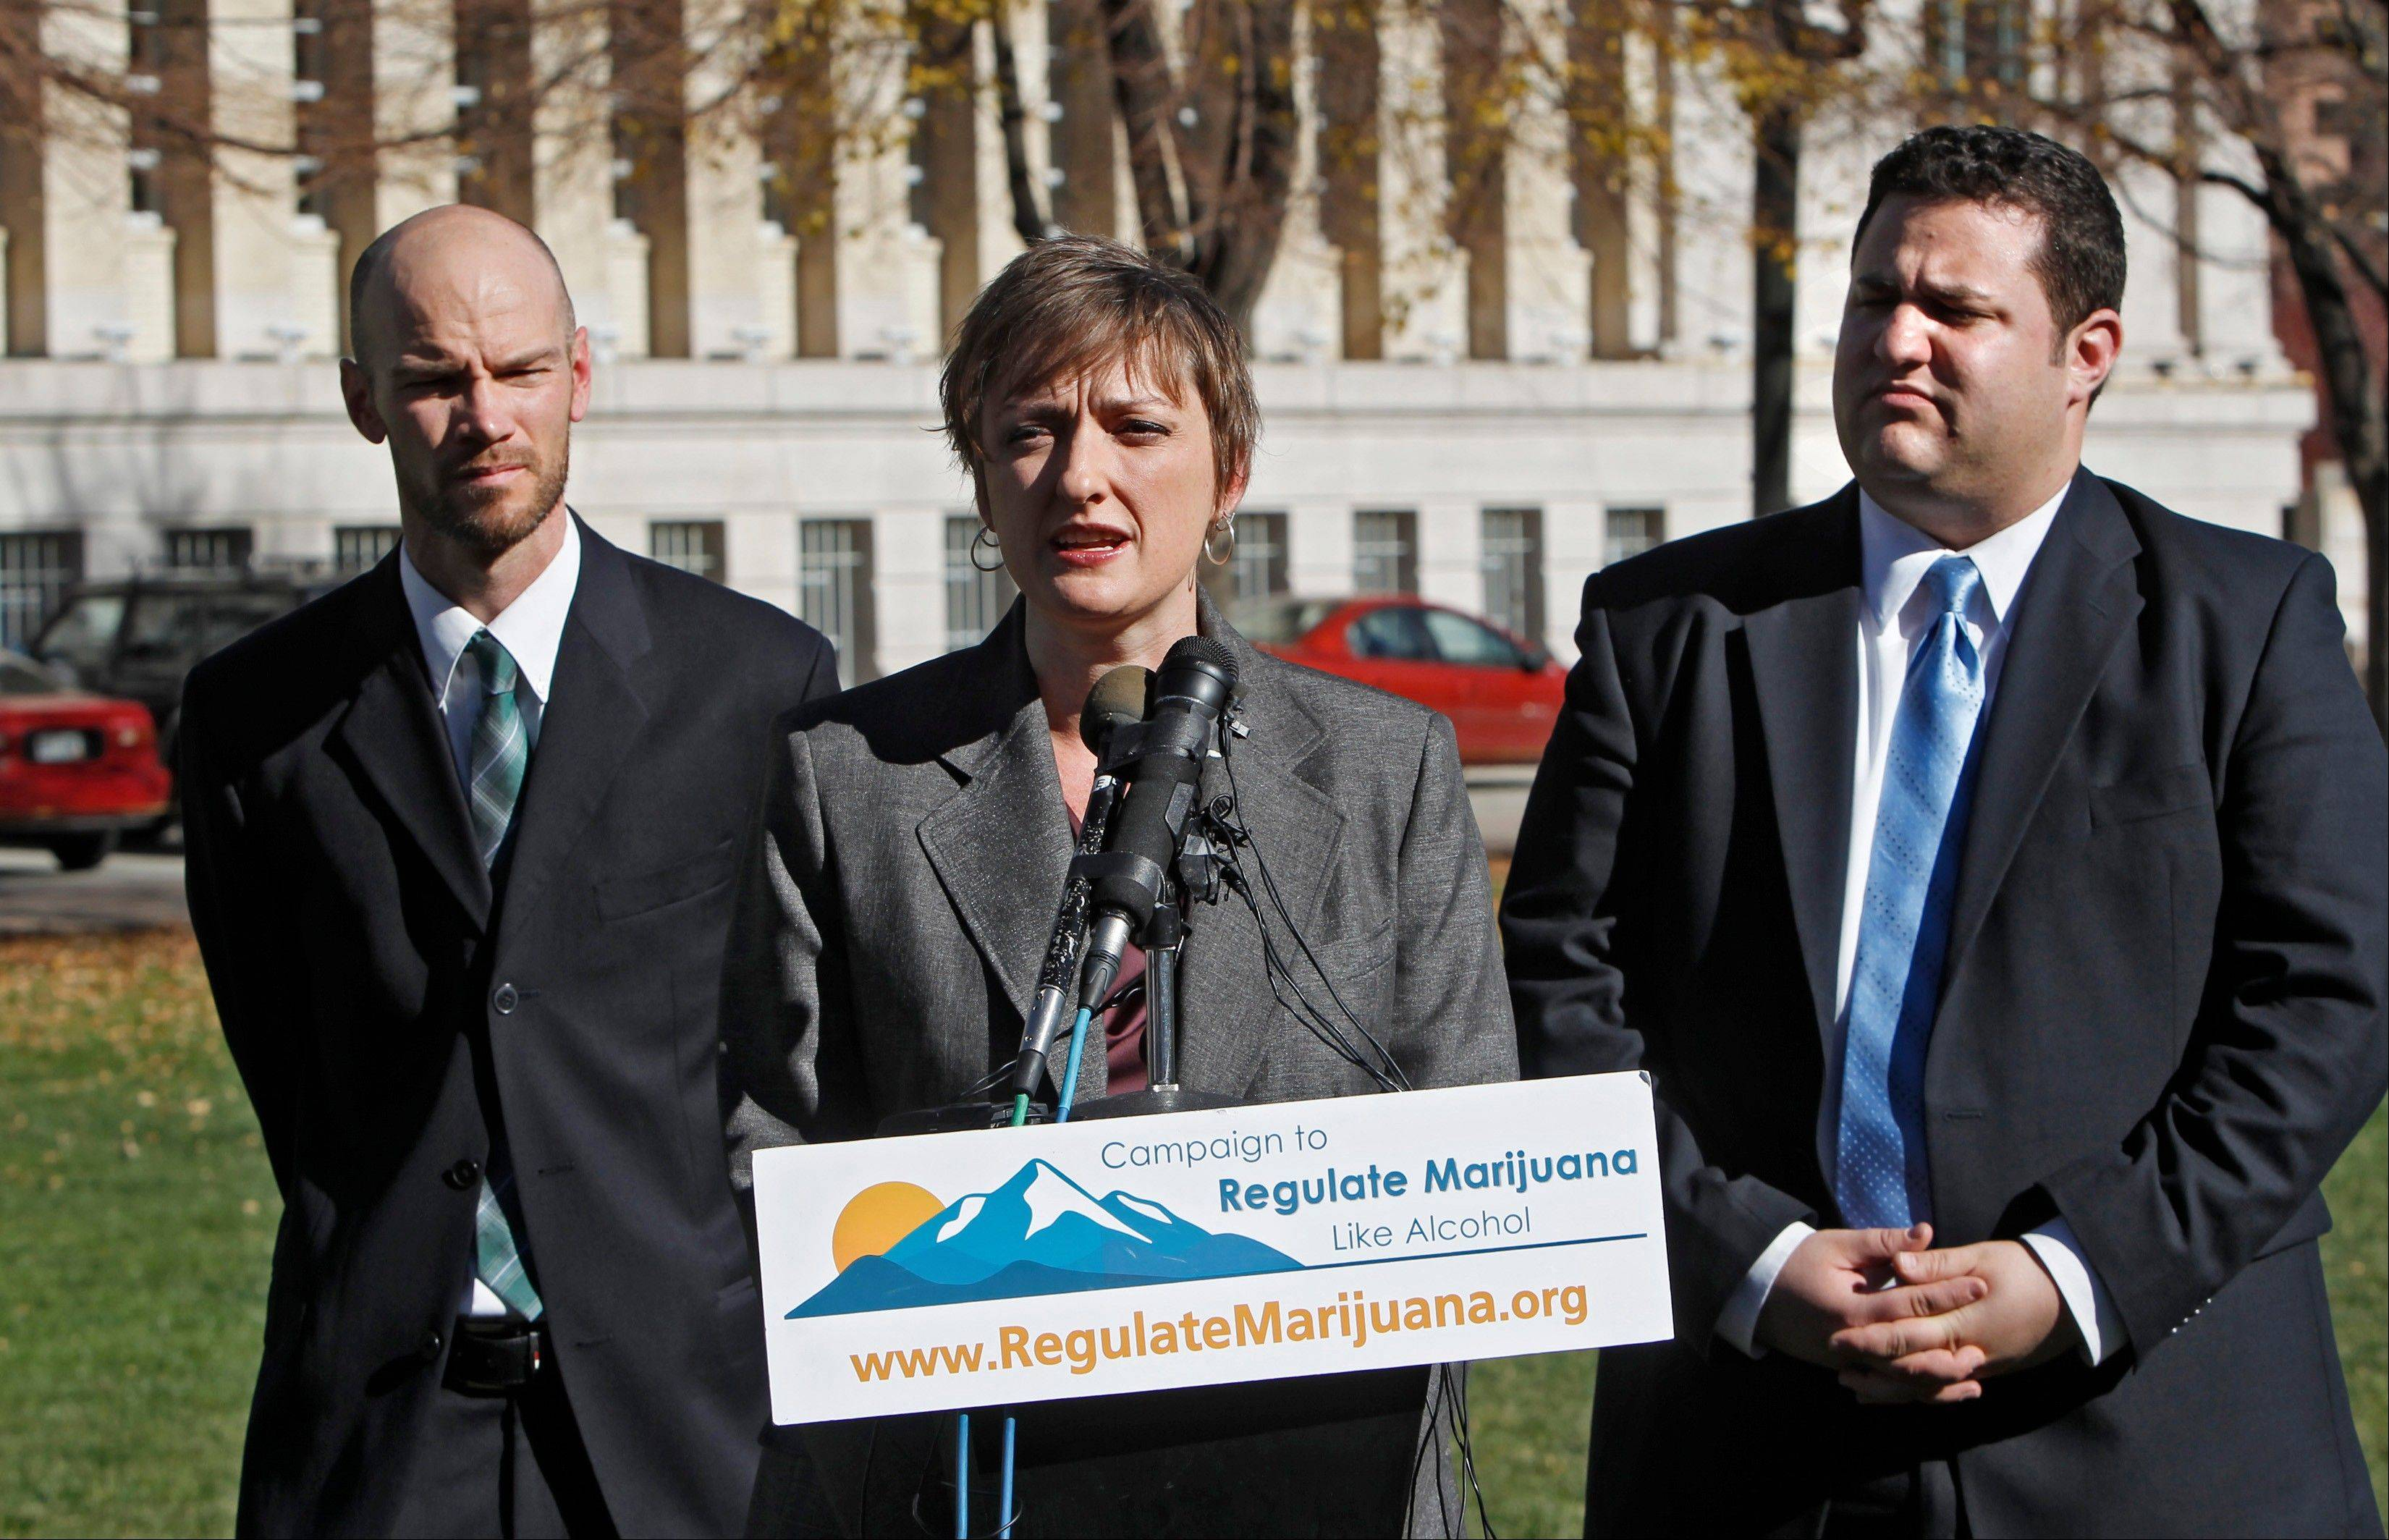 Betty Aldworth, center, a director of the Yes on 64 campaign responds to questions about the legalization of marijuana at a news conference in Denver on Wednesday. Co-directors Brian Vicente, left, and Mason Tvert, right, listen. Colorado voters passed Amendment 64 on Tuesday legalizing marijuana in Colorado for recreational use.